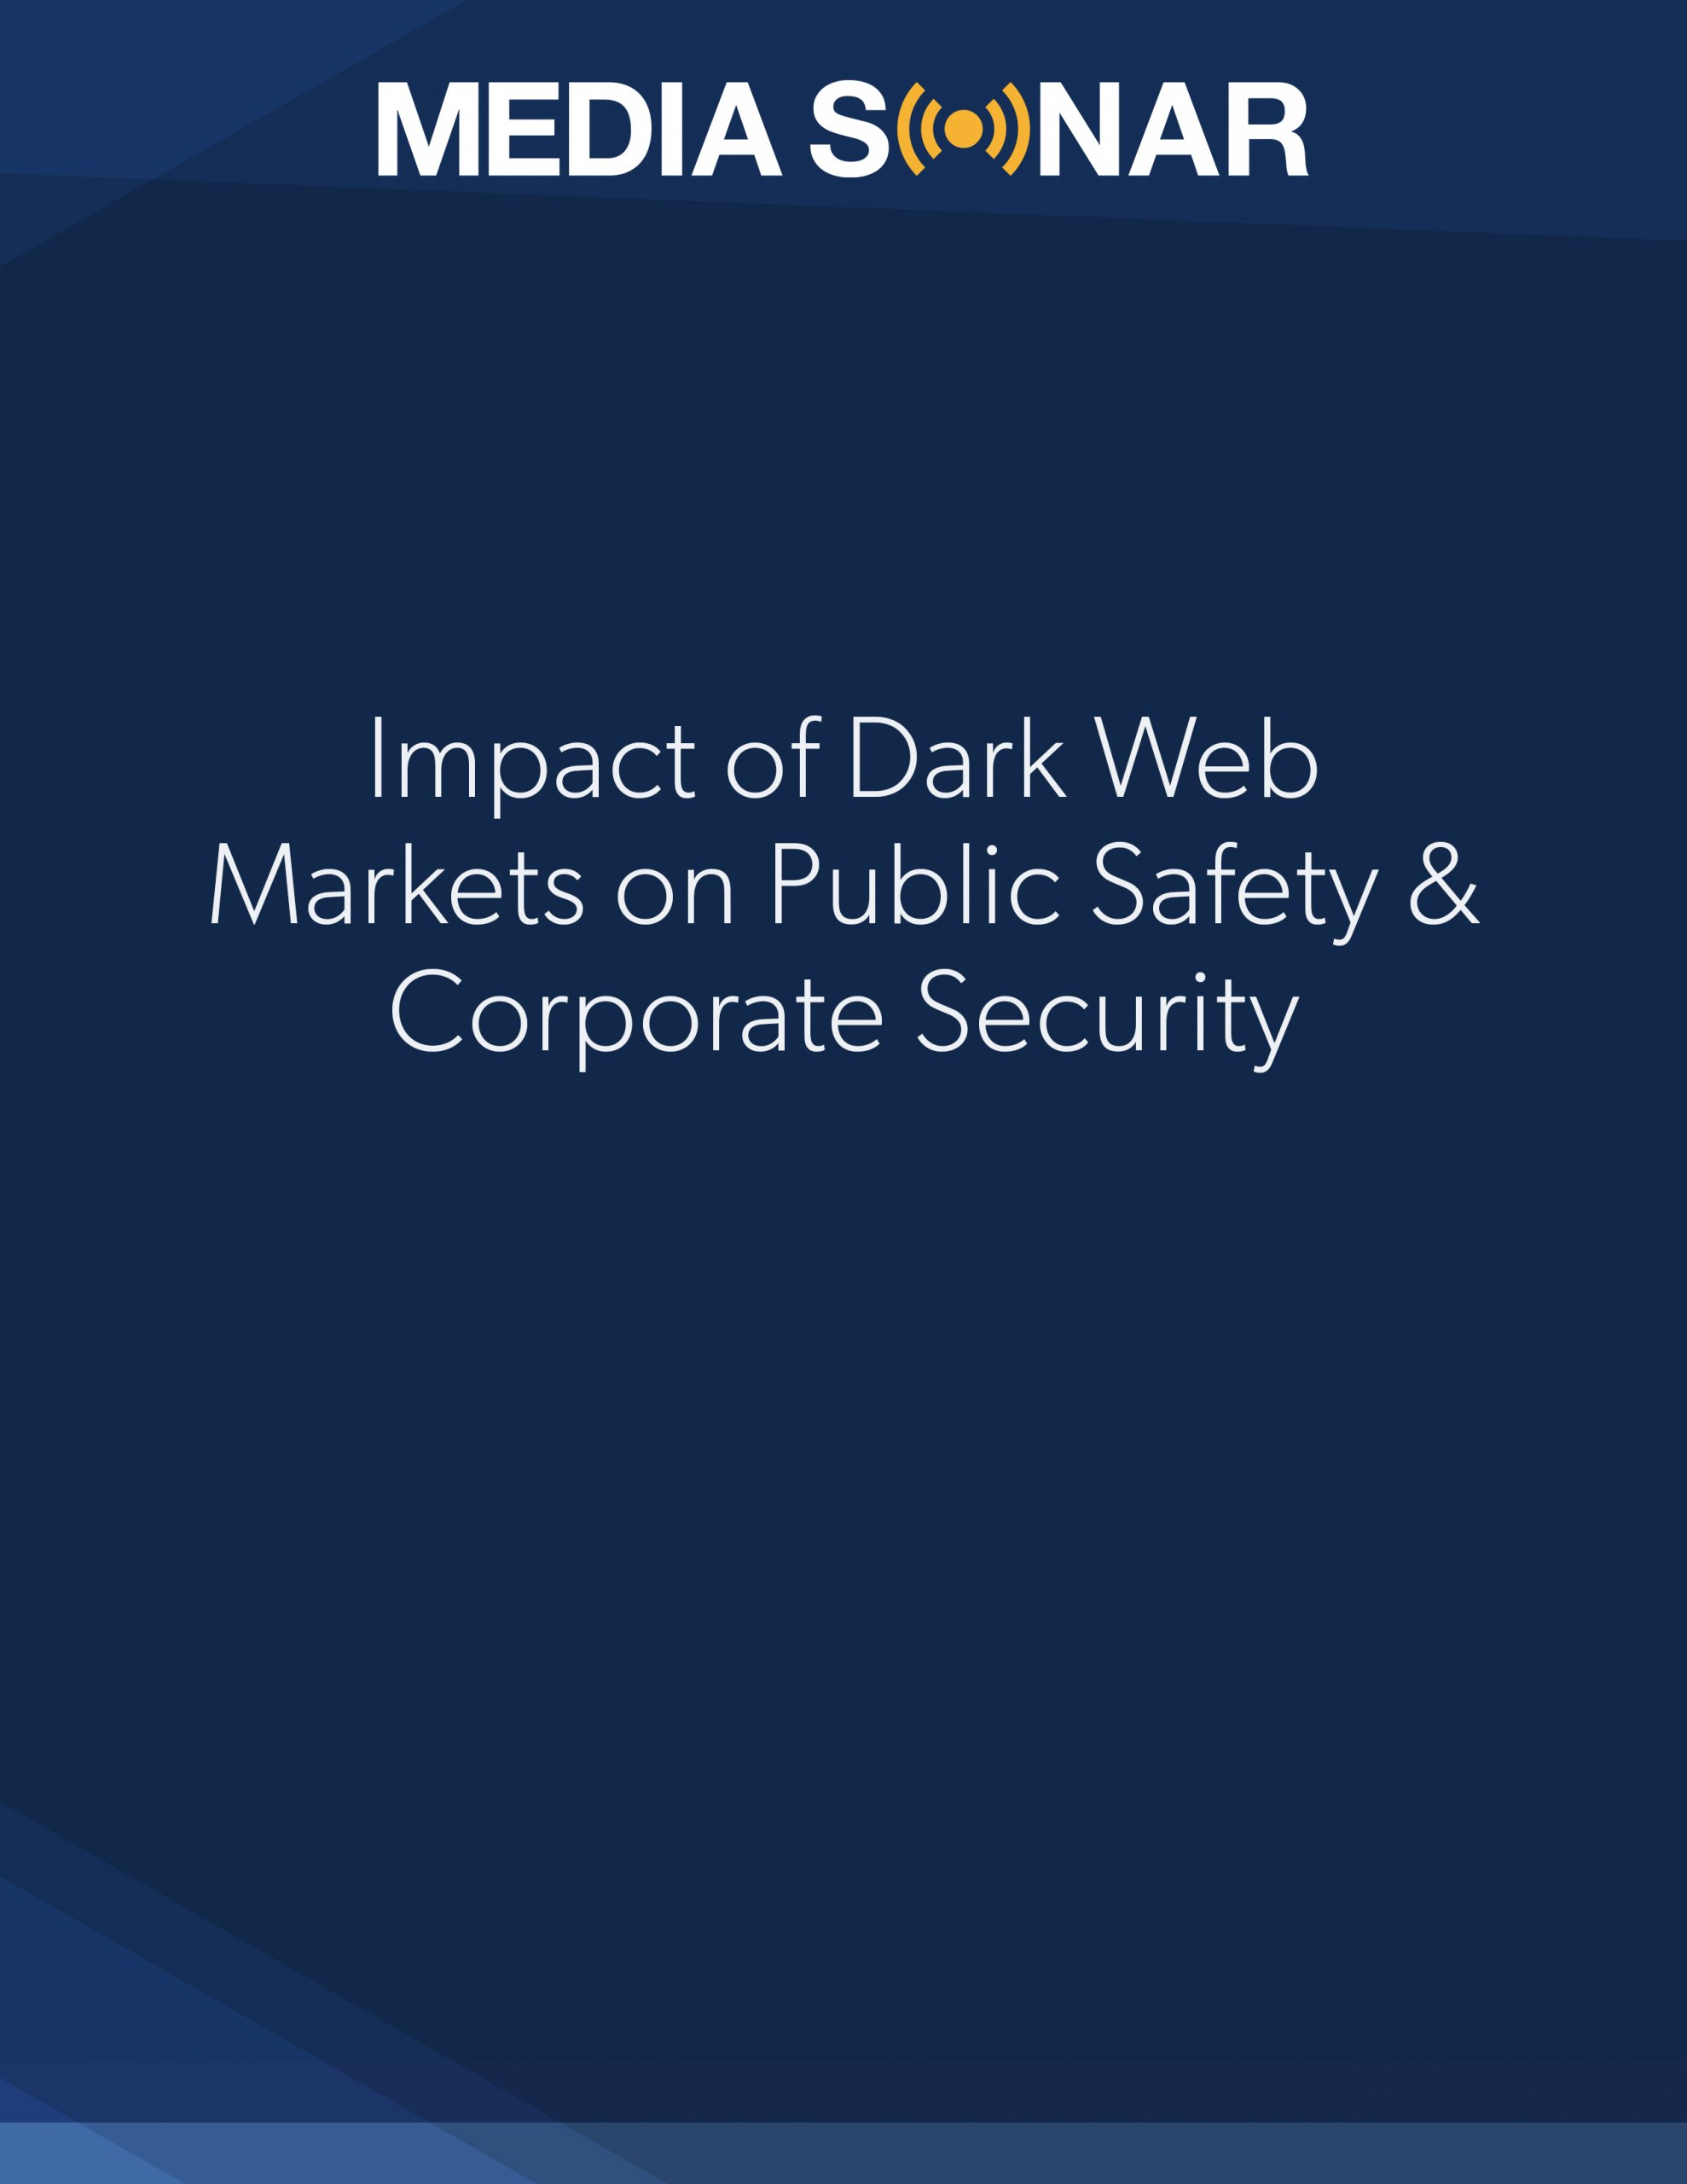 dark web markets corporate security public safety